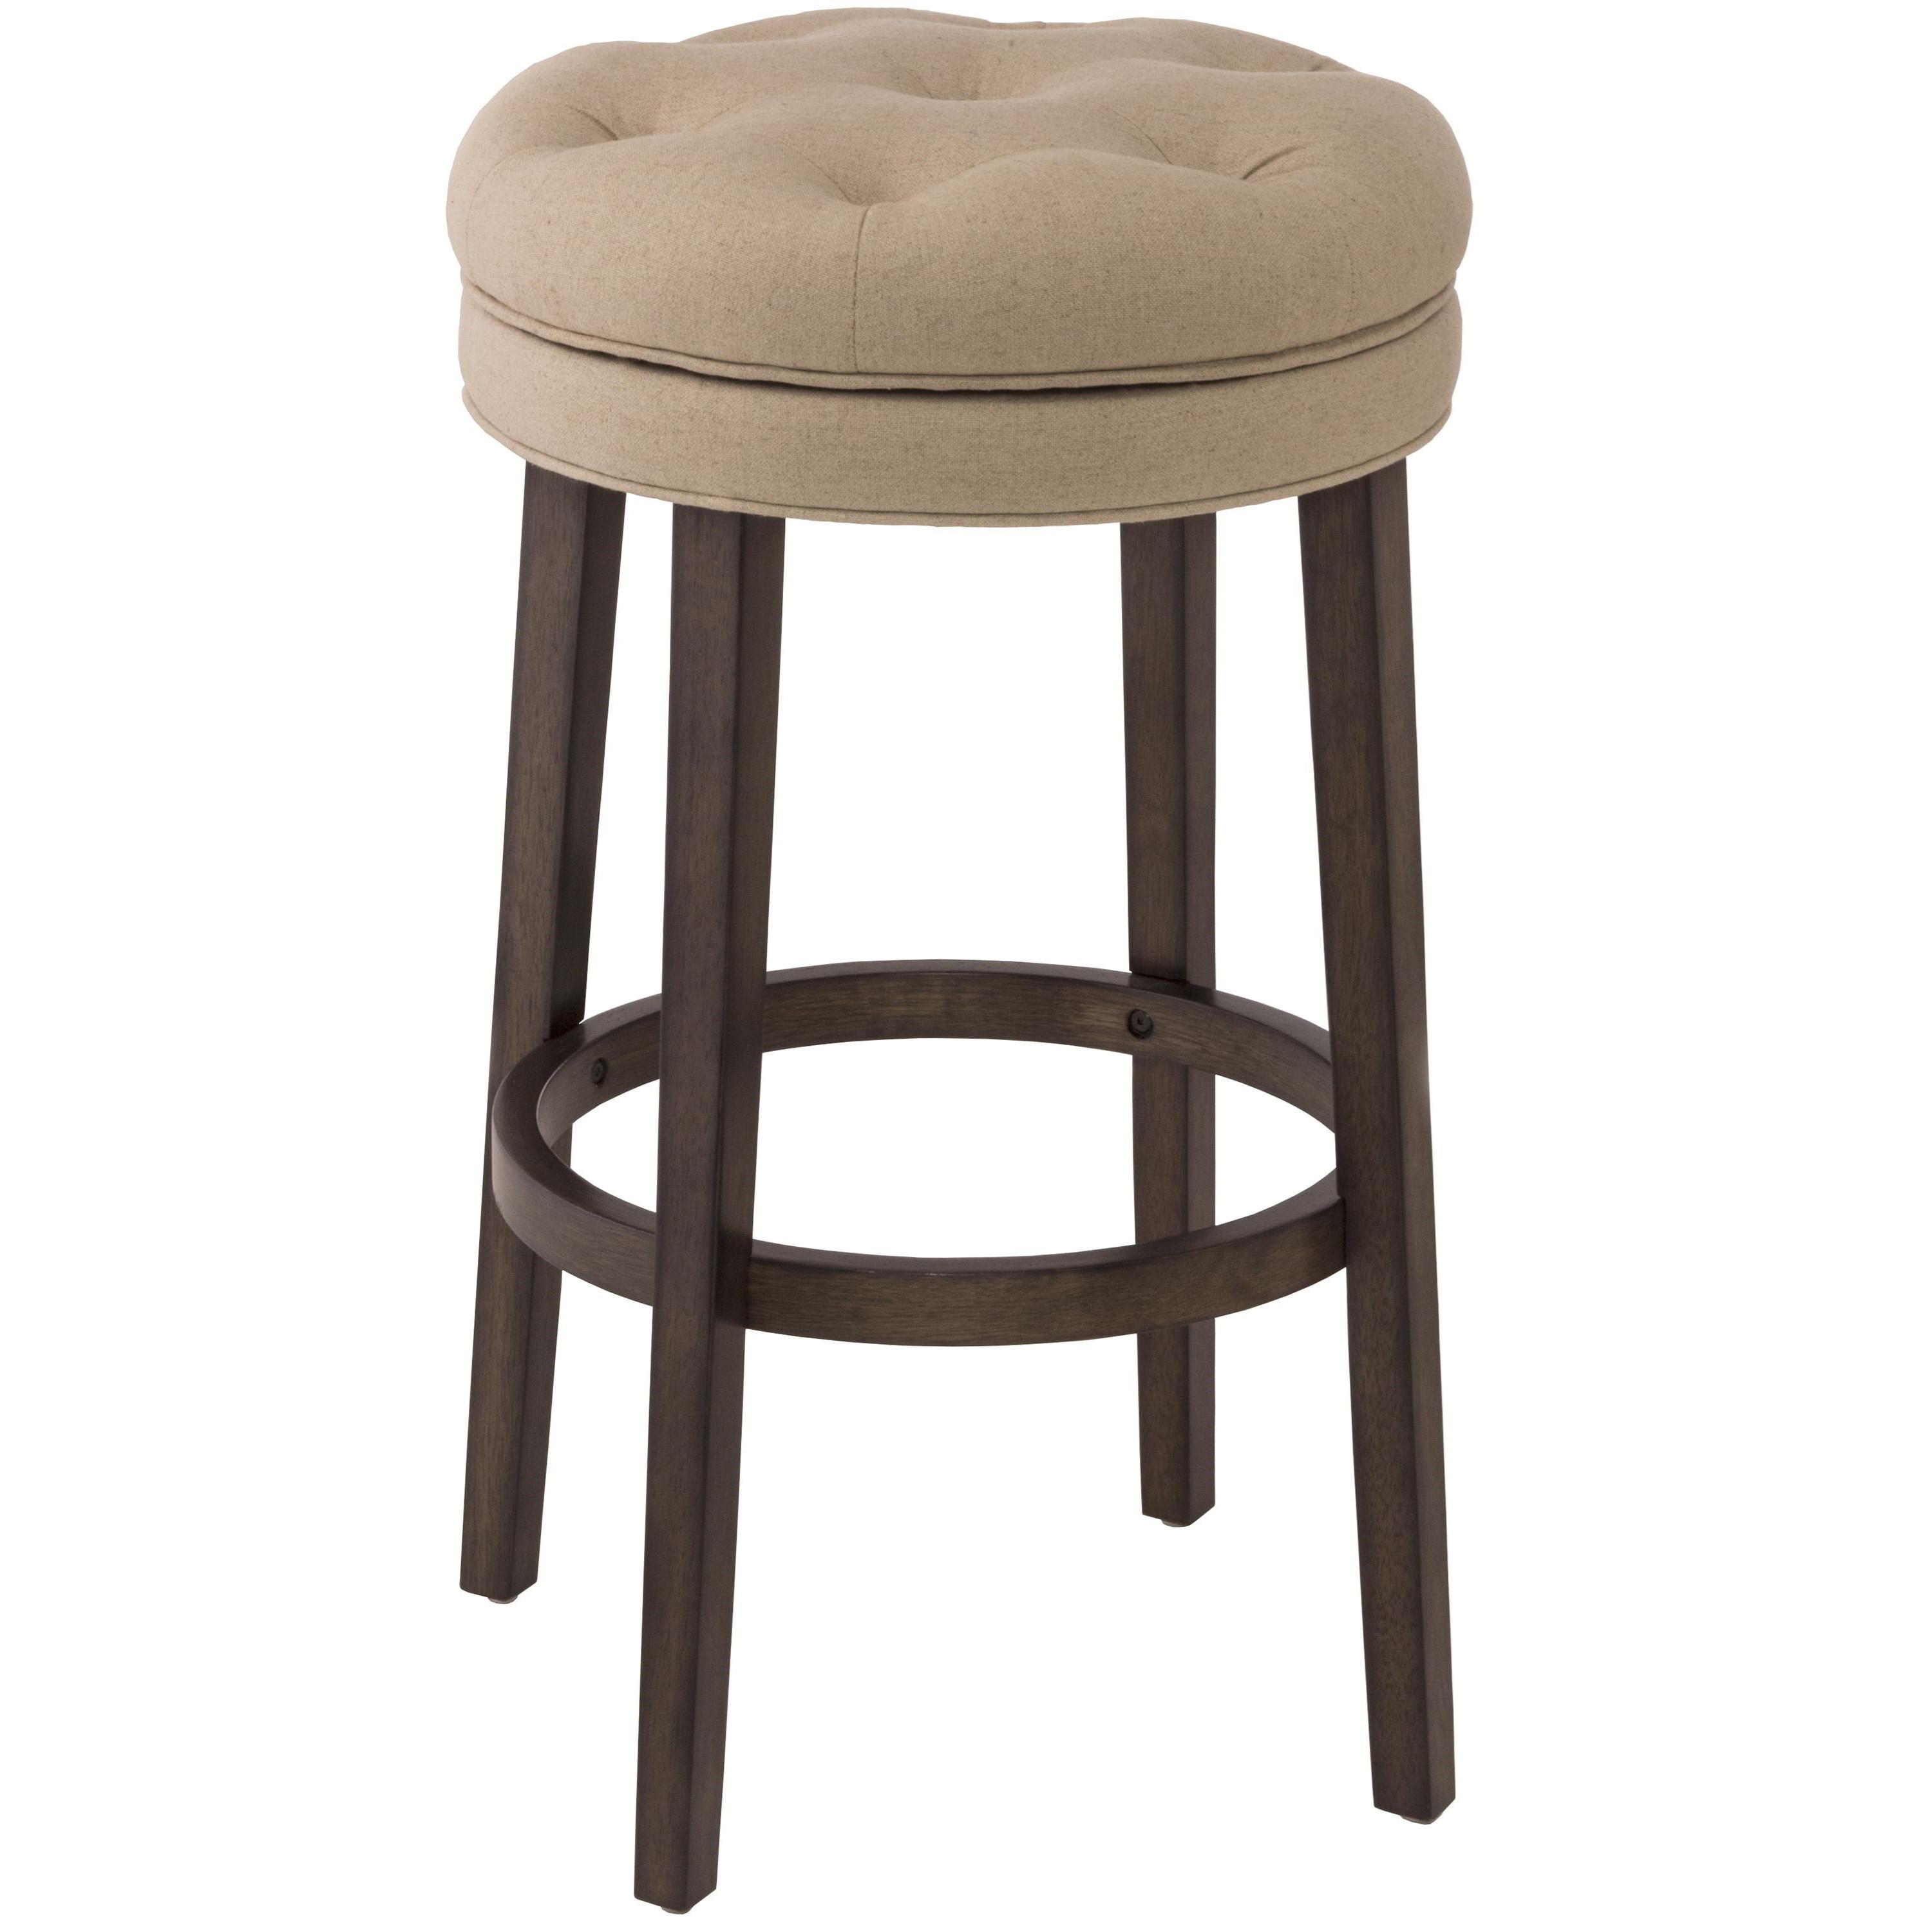 Hillsdale Backless Bar Stools 5914 825 Backless Swivel